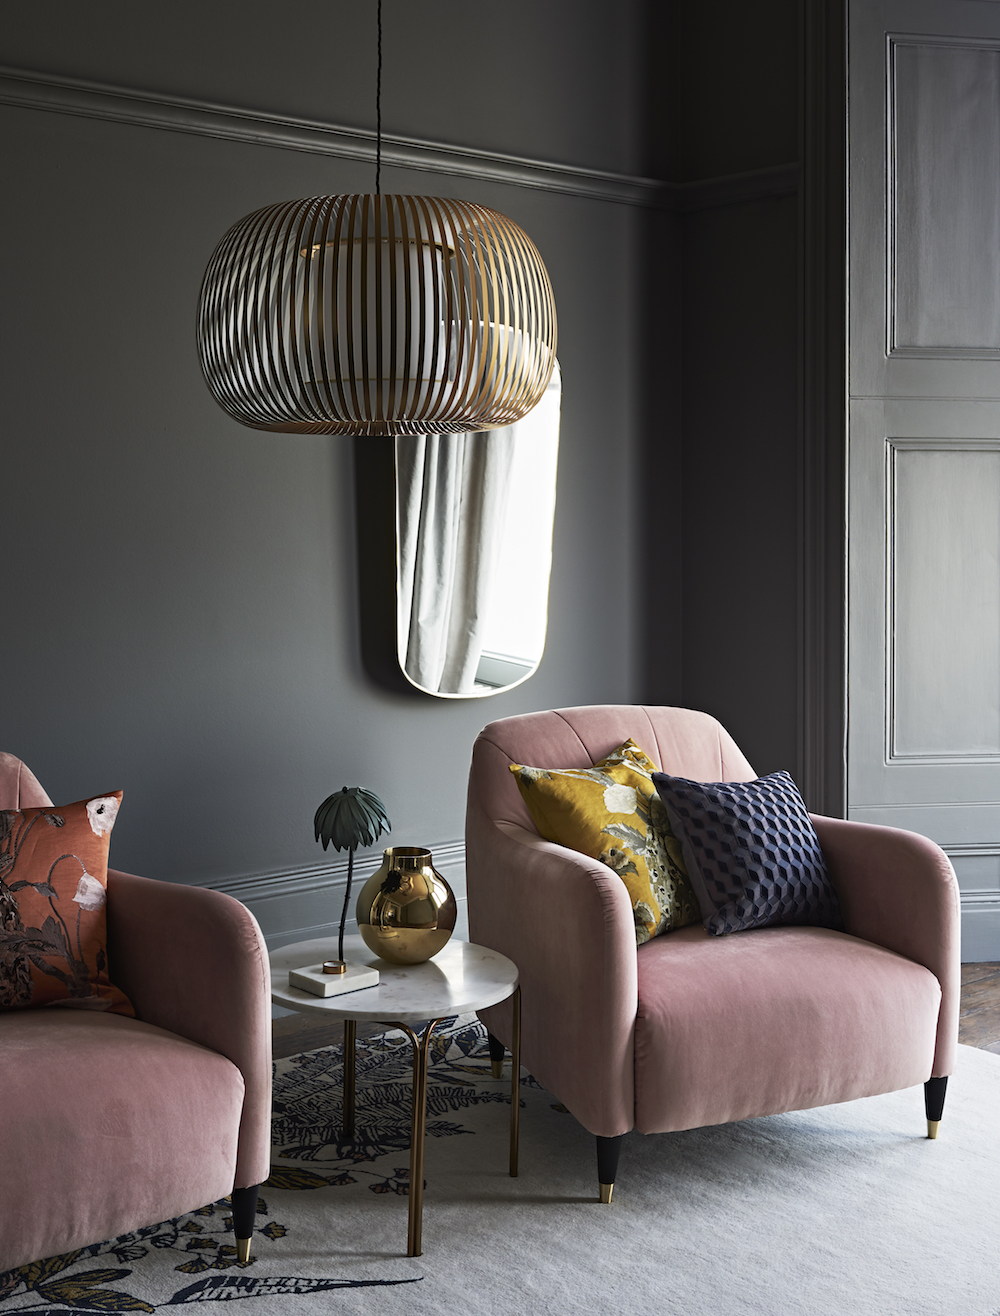 Designer Sofas John Lewis John Lewis Launches The Palazzo Collection Heart Home